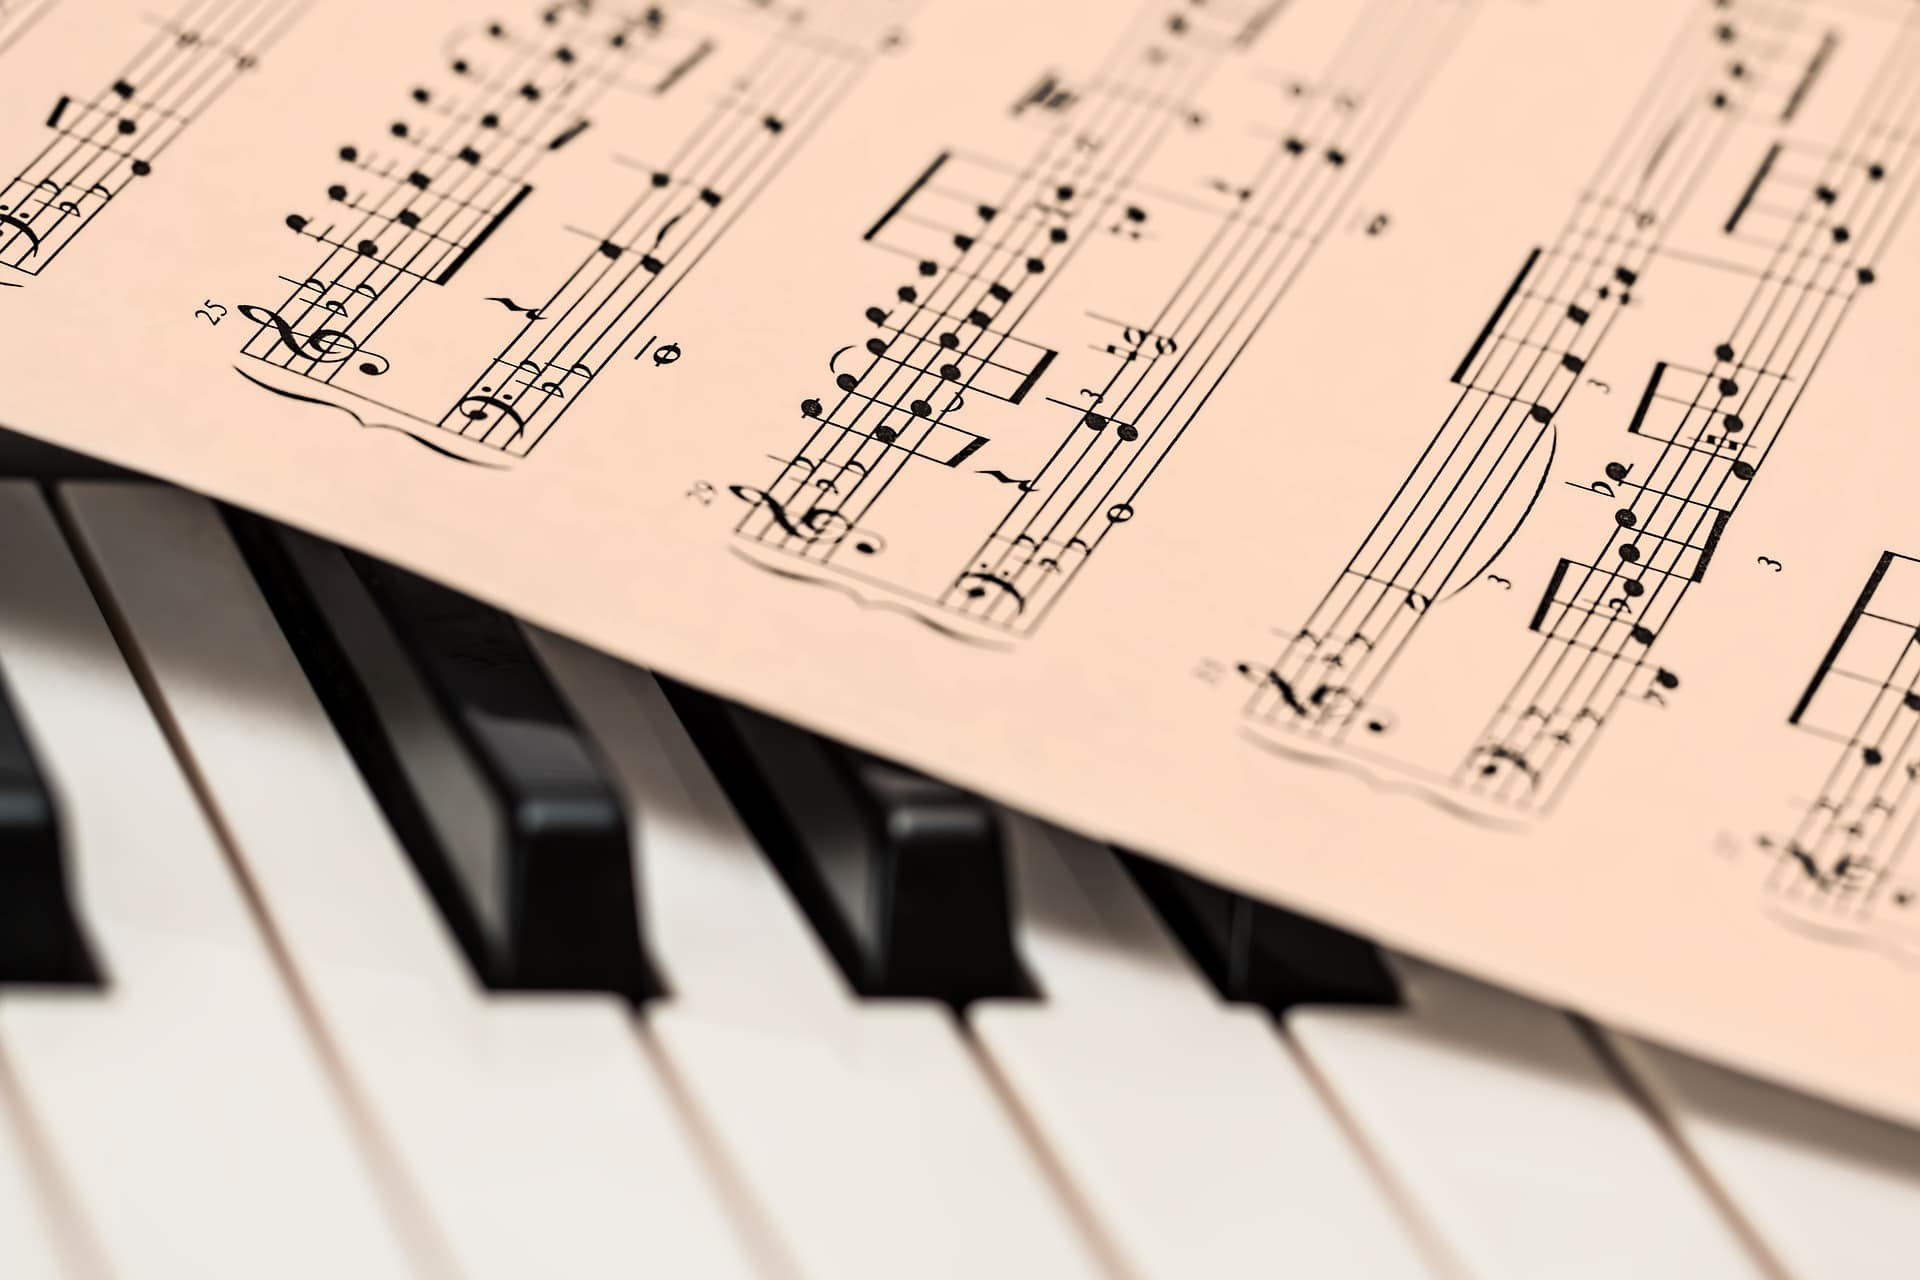 Piano keys partially covered by sheet music